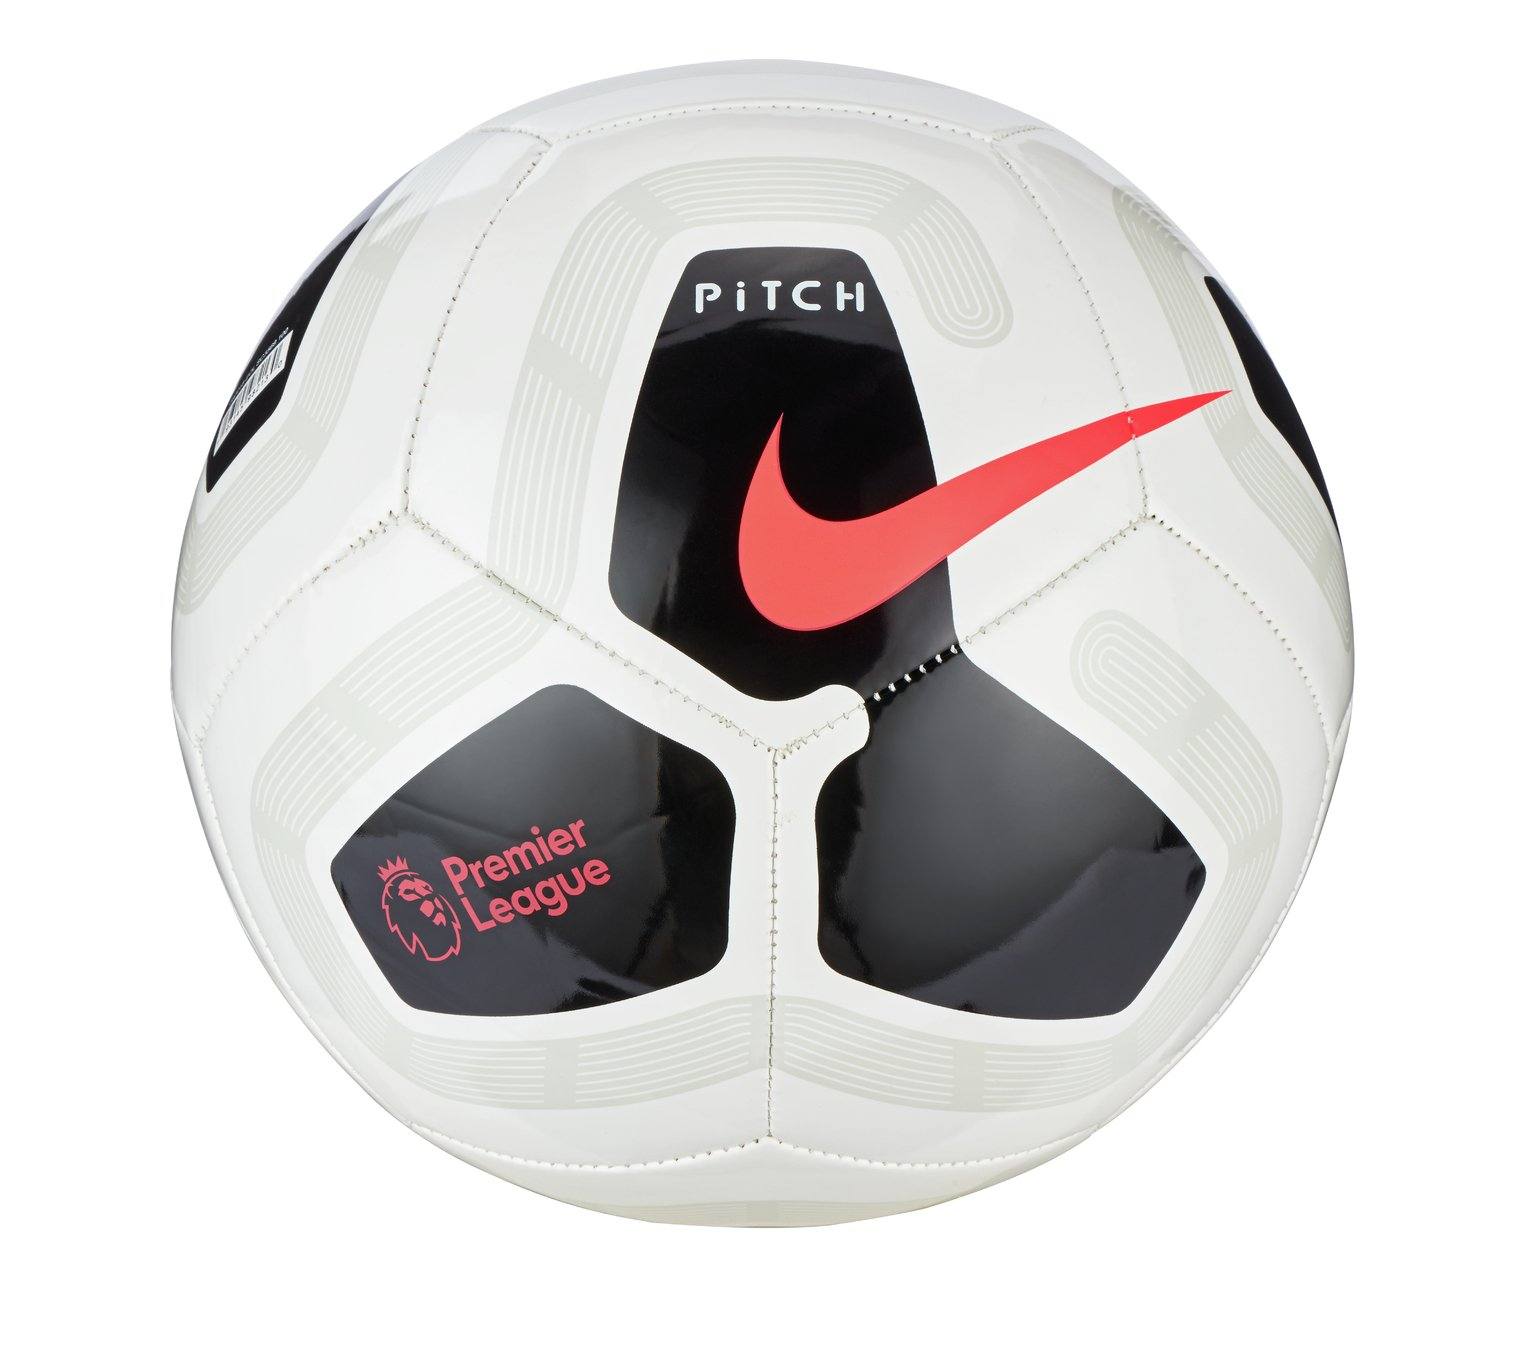 Nike Pitch Size 5 Football